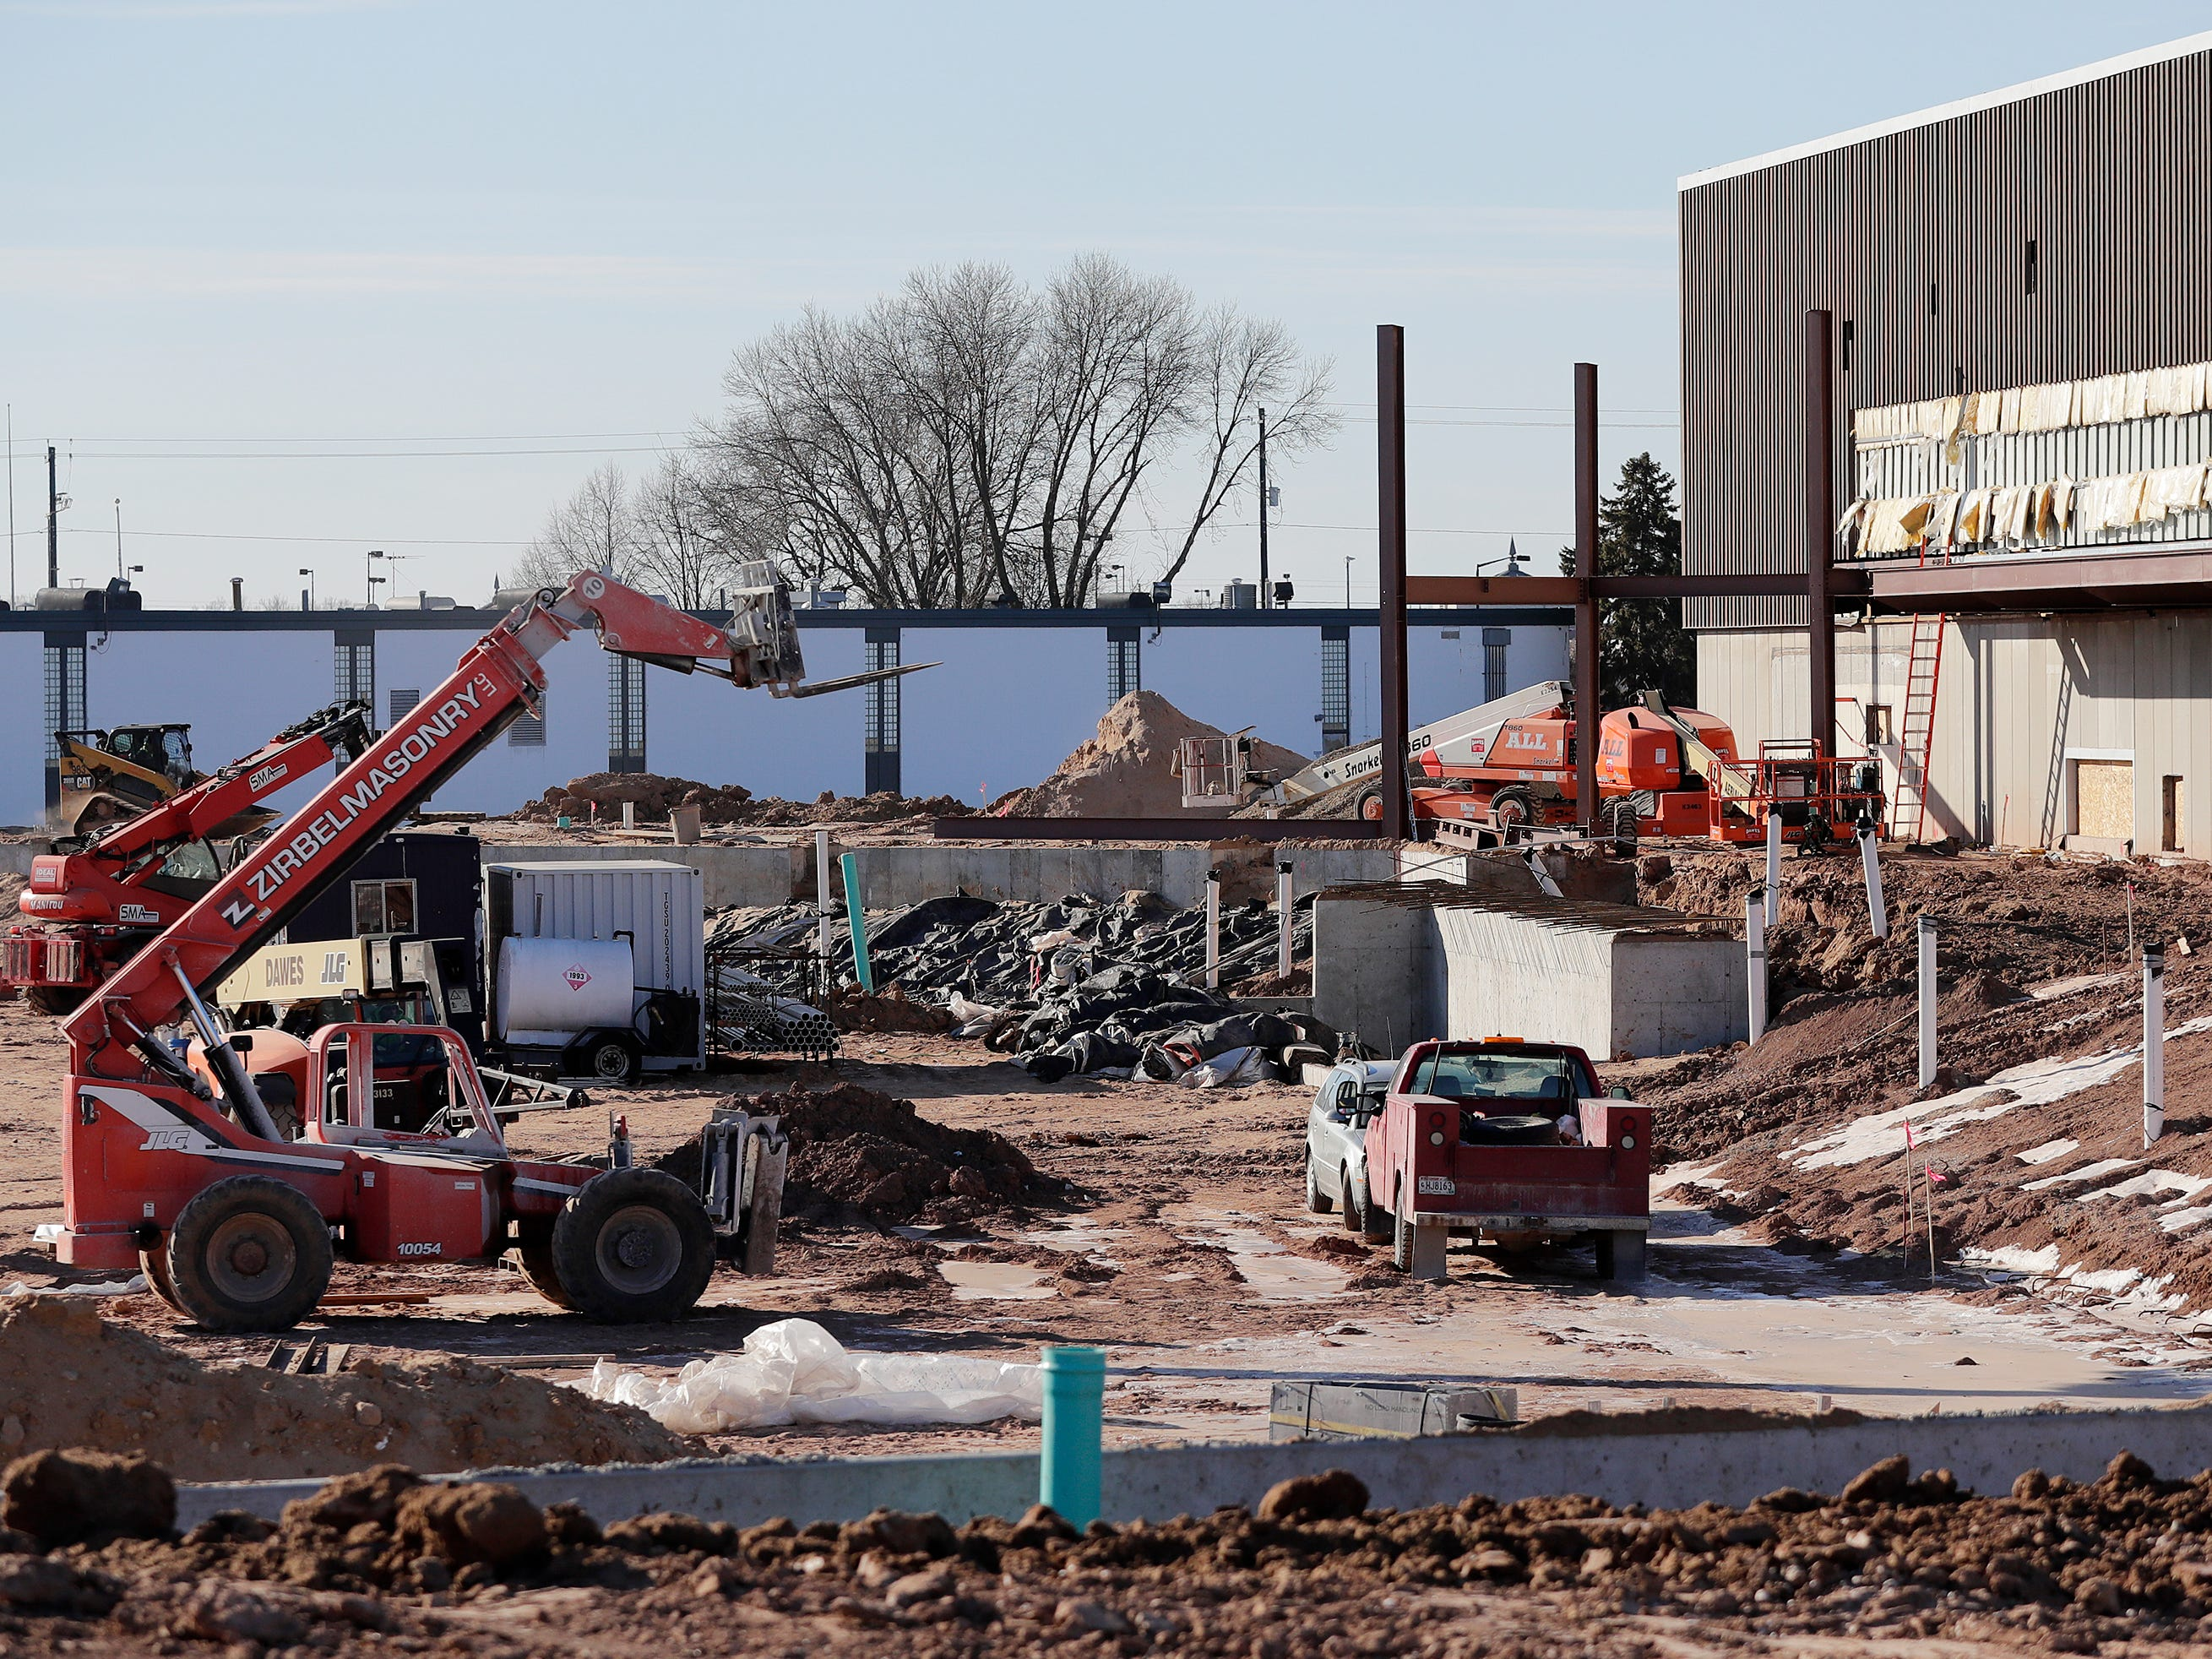 Construction for Capital Credit Union Park is ongoing, viewed from beyond the left field wall, on Wednesday, January 16, 2019 in Ashwaubenon, Wis. The stadium is set to open this spring and will host the Green Bay Booyah baseball team in the Northwoods League and a United Soccer Leagues League 2 team.